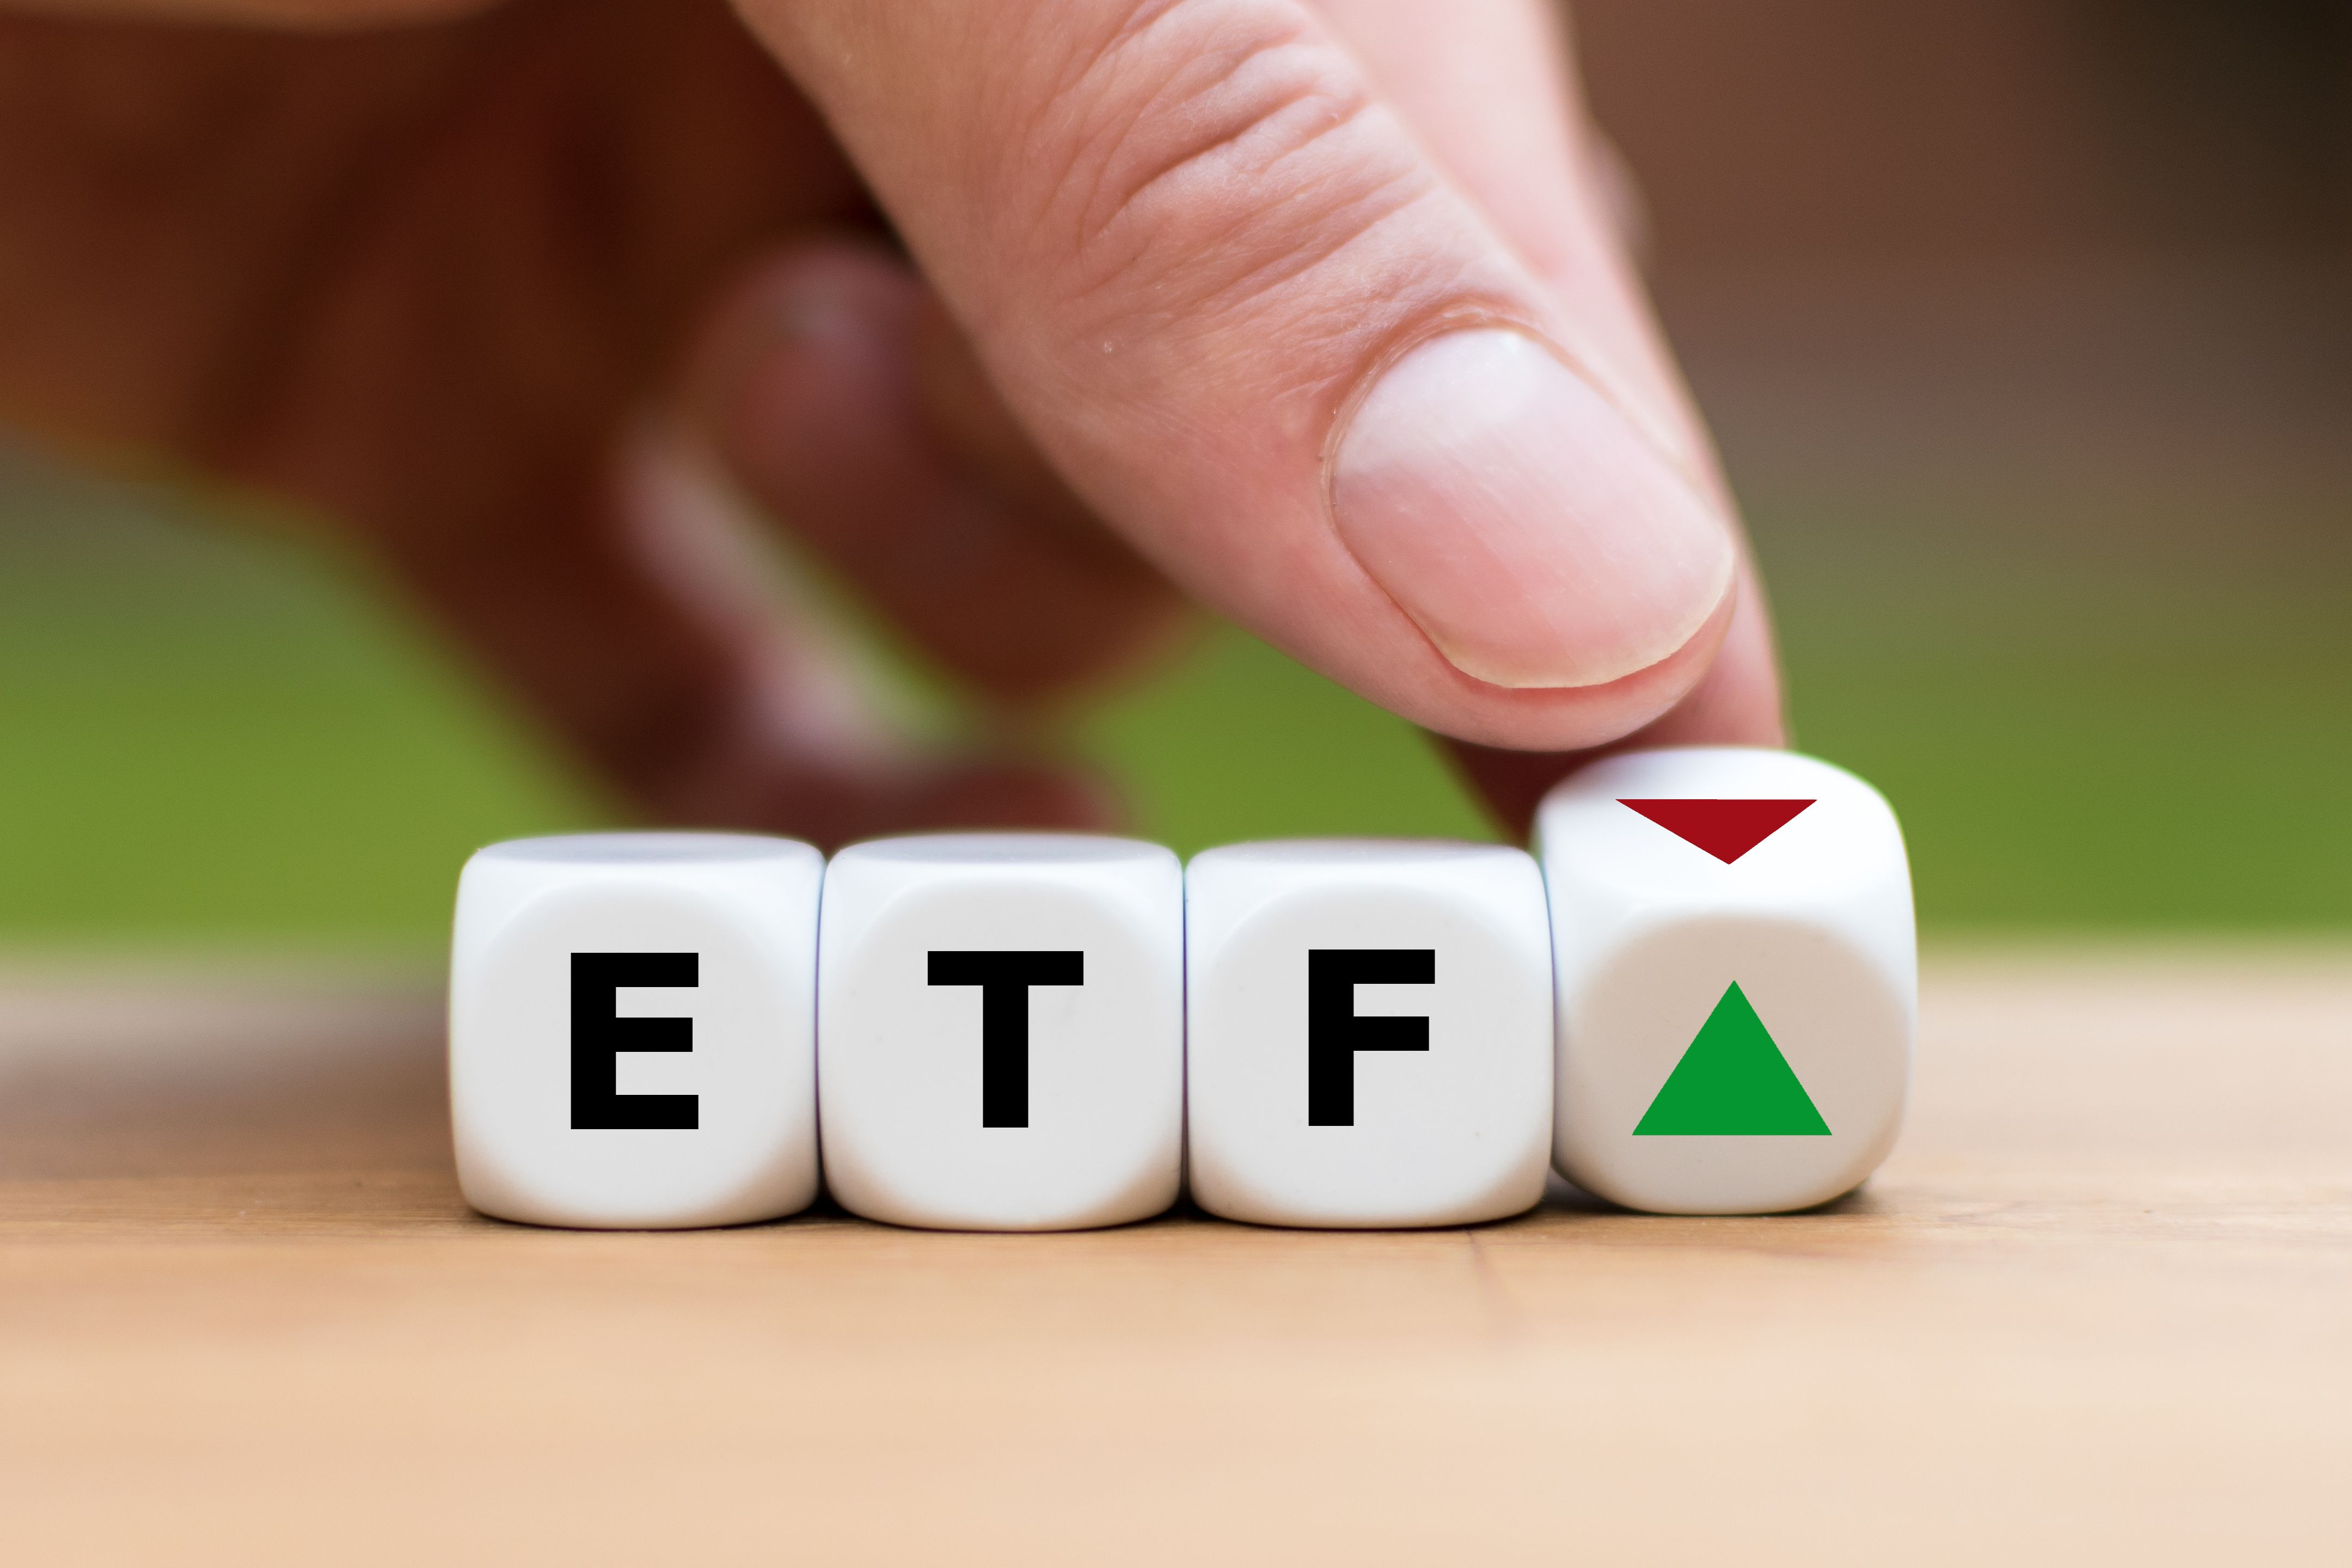 Six health-care ETFs that could add some immunity to your portfolio